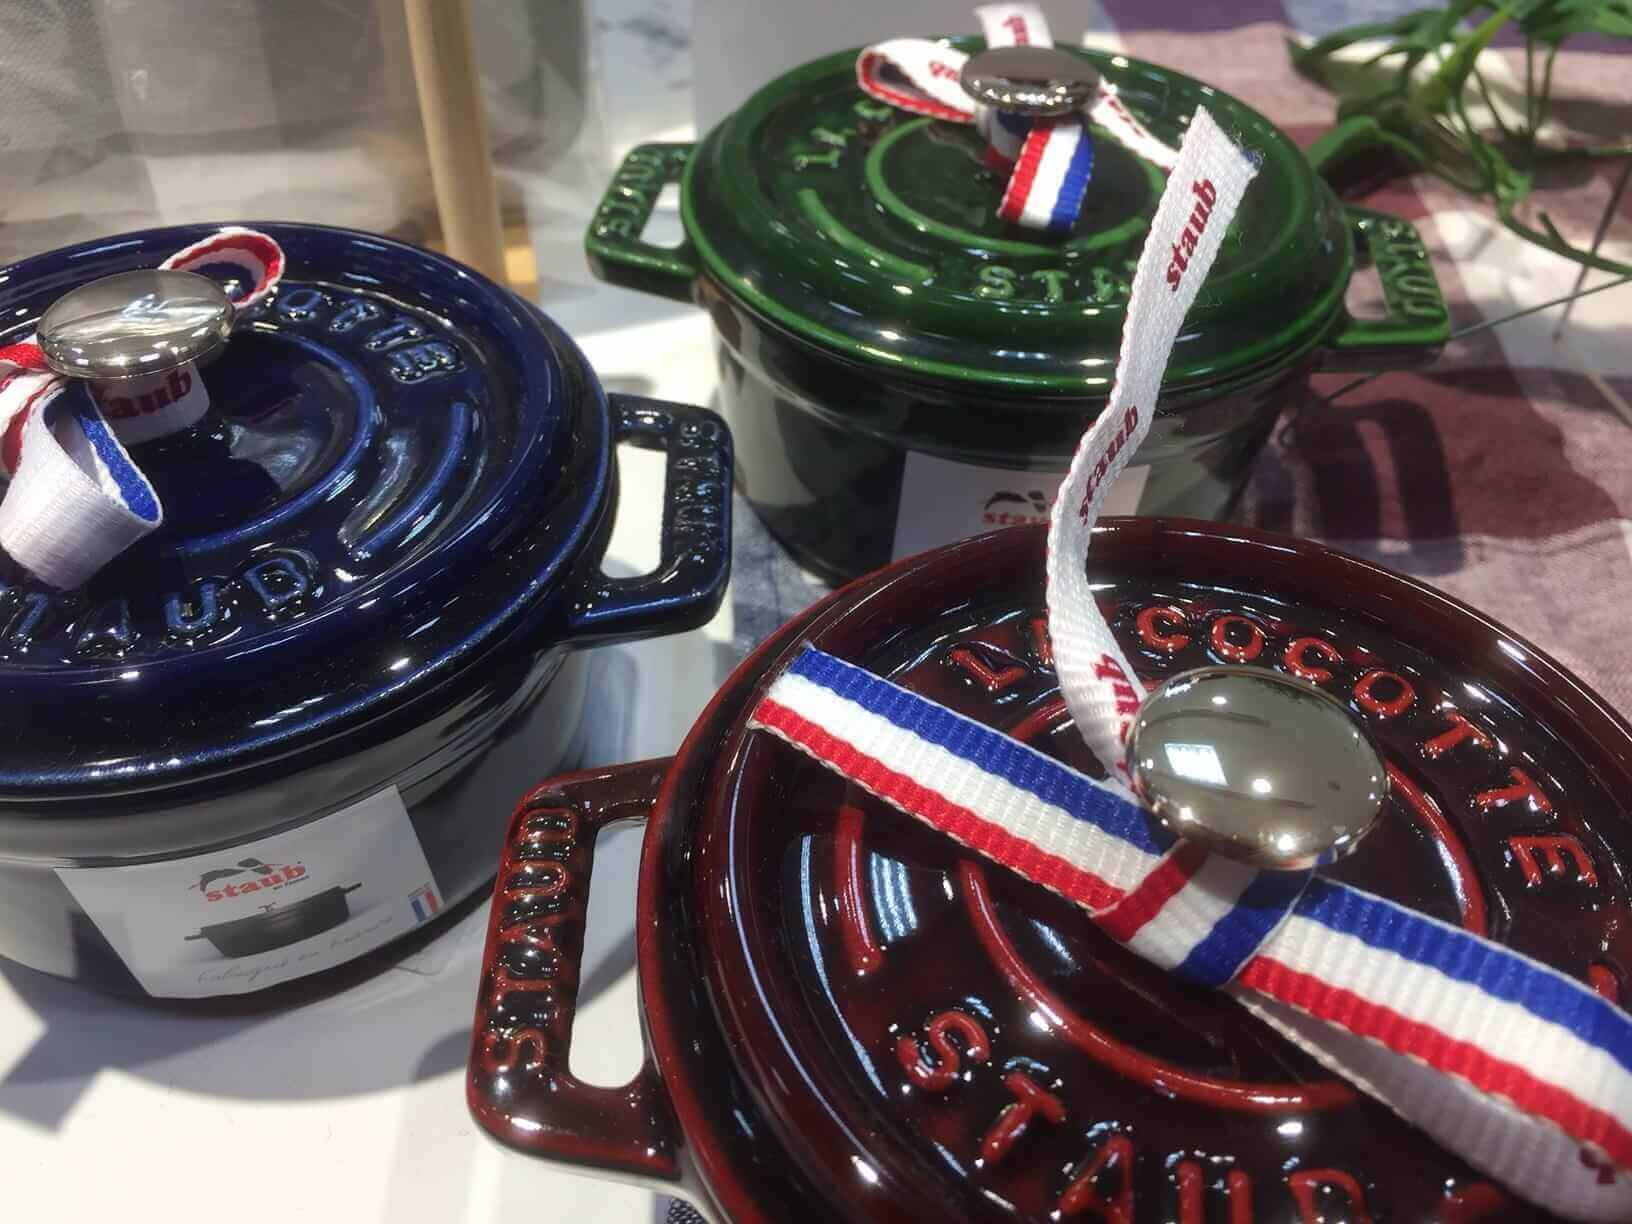 Display of Staub pot. they feature high gloss enamel and a made in France ribbon. (picture of three Staub pots, one is red the other is blue and the last is green)